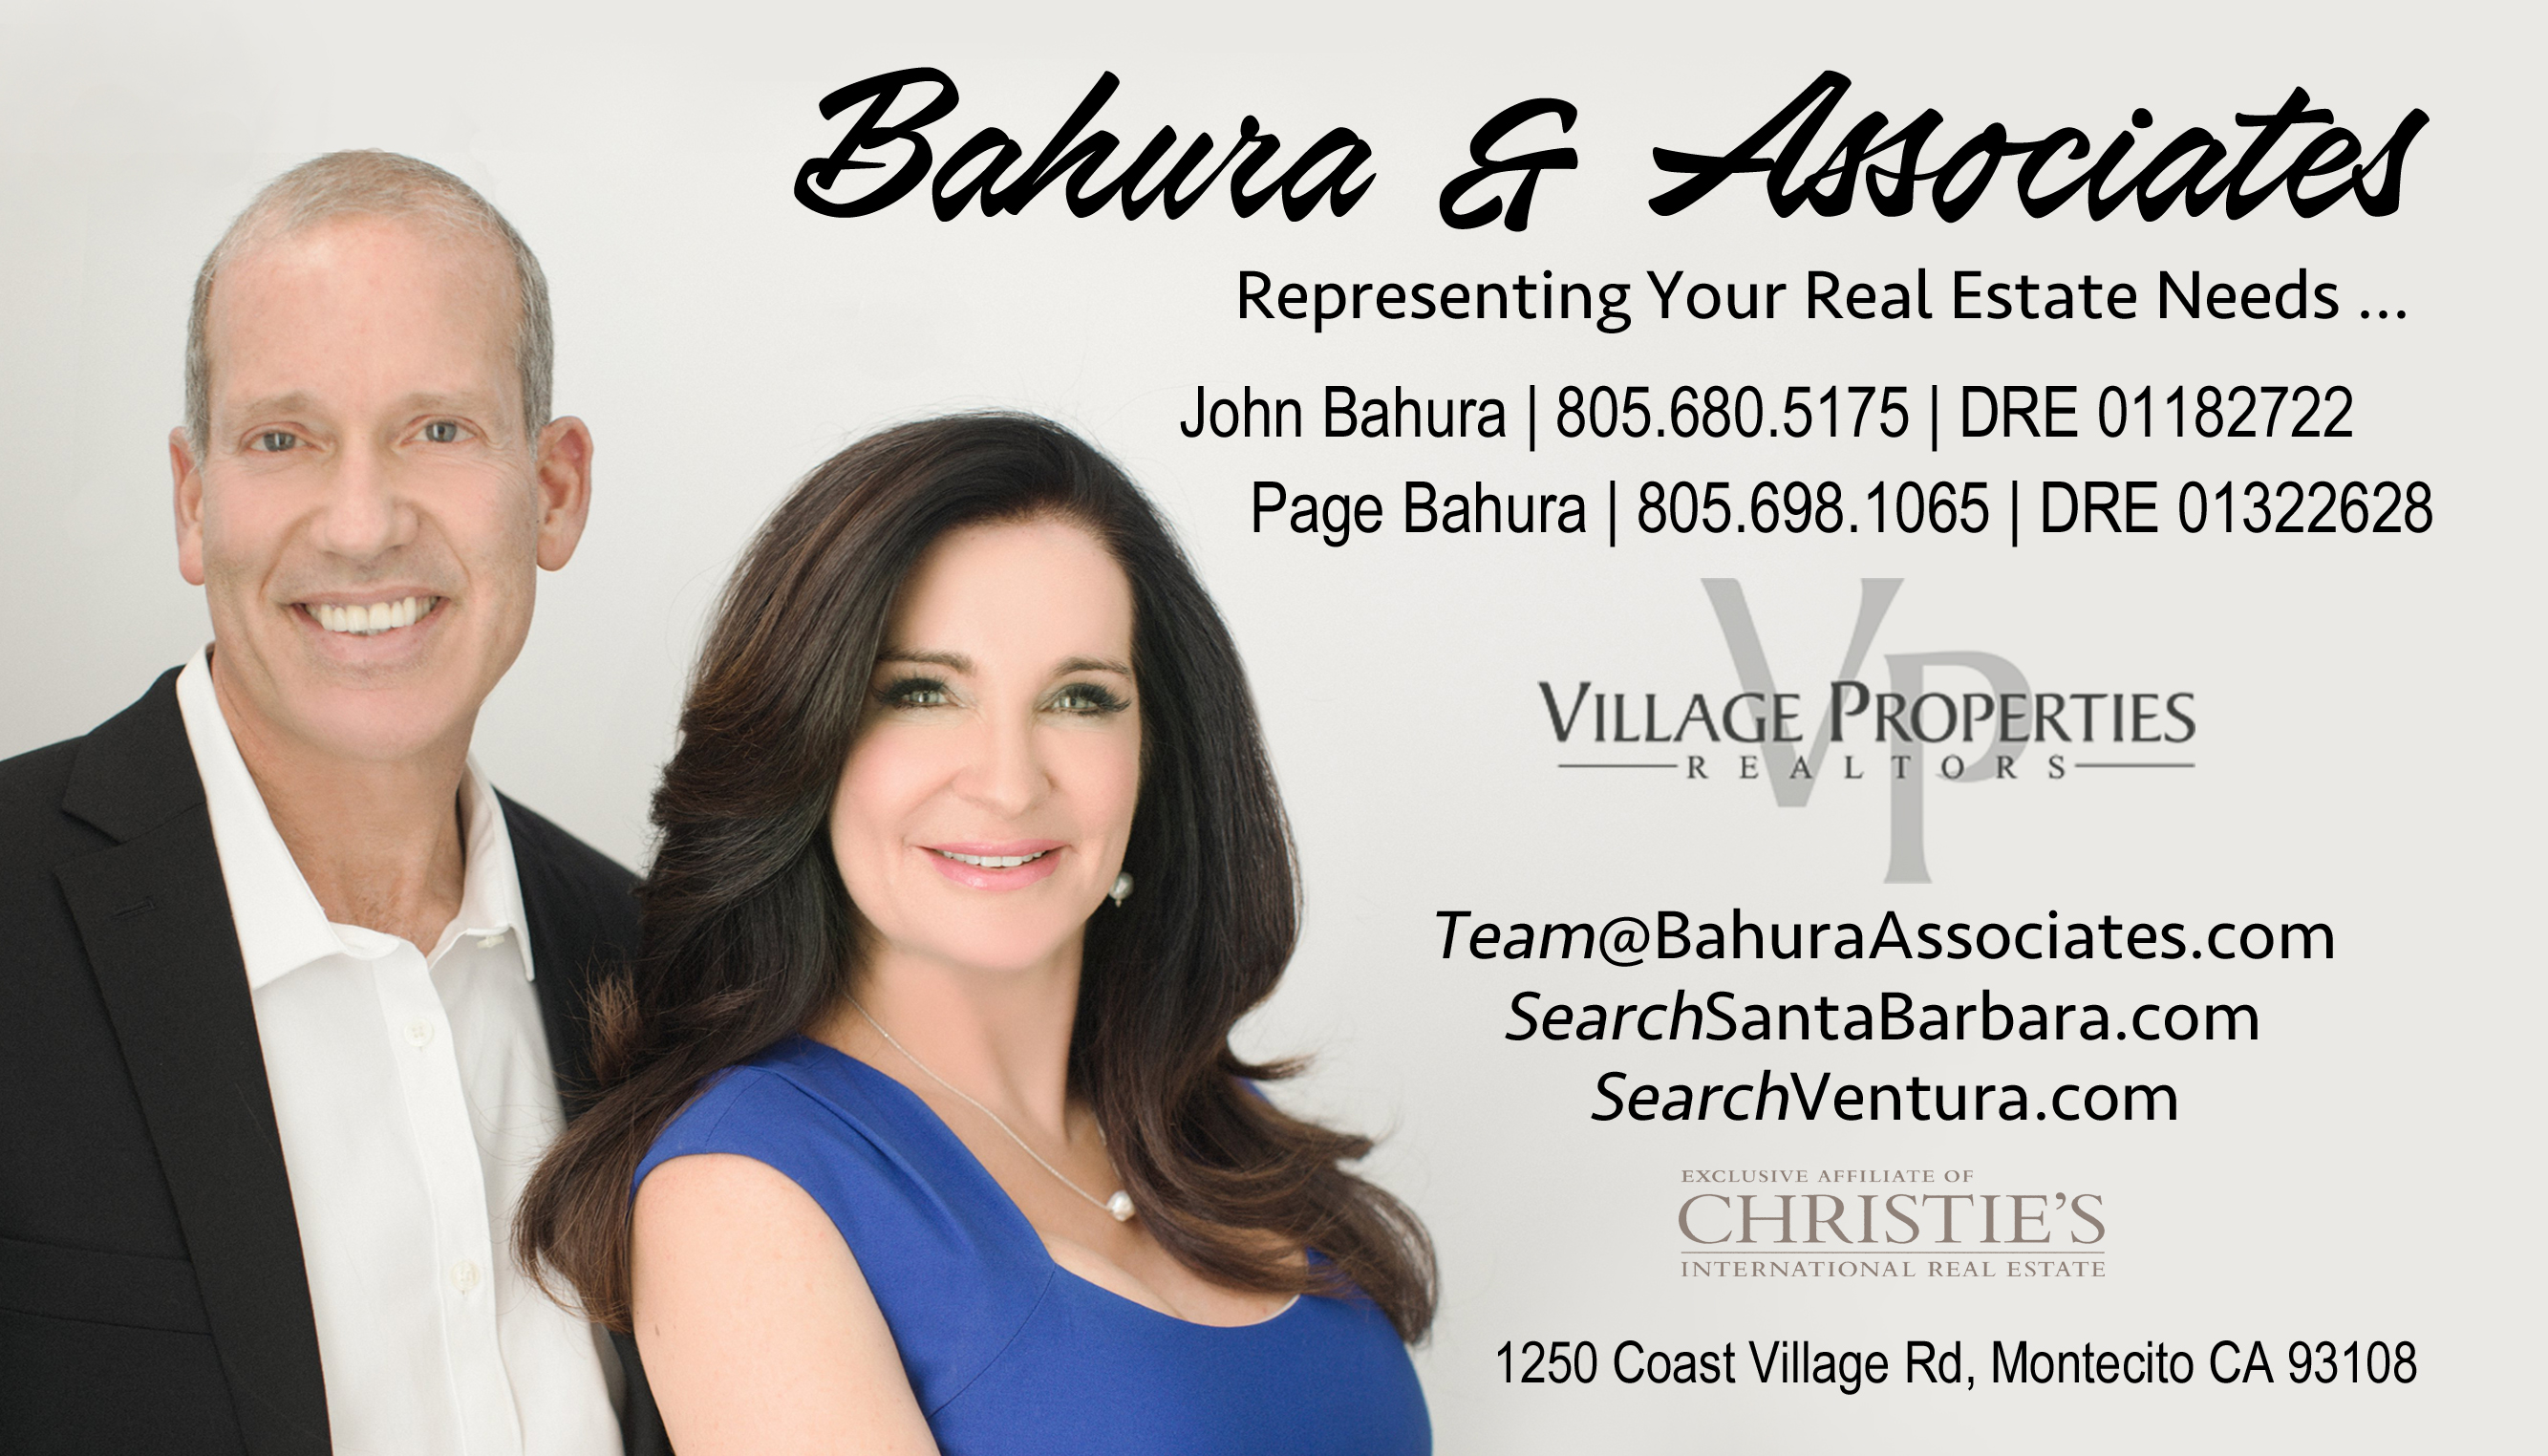 Business Card Front - Bahura & Associates 3.5x2in